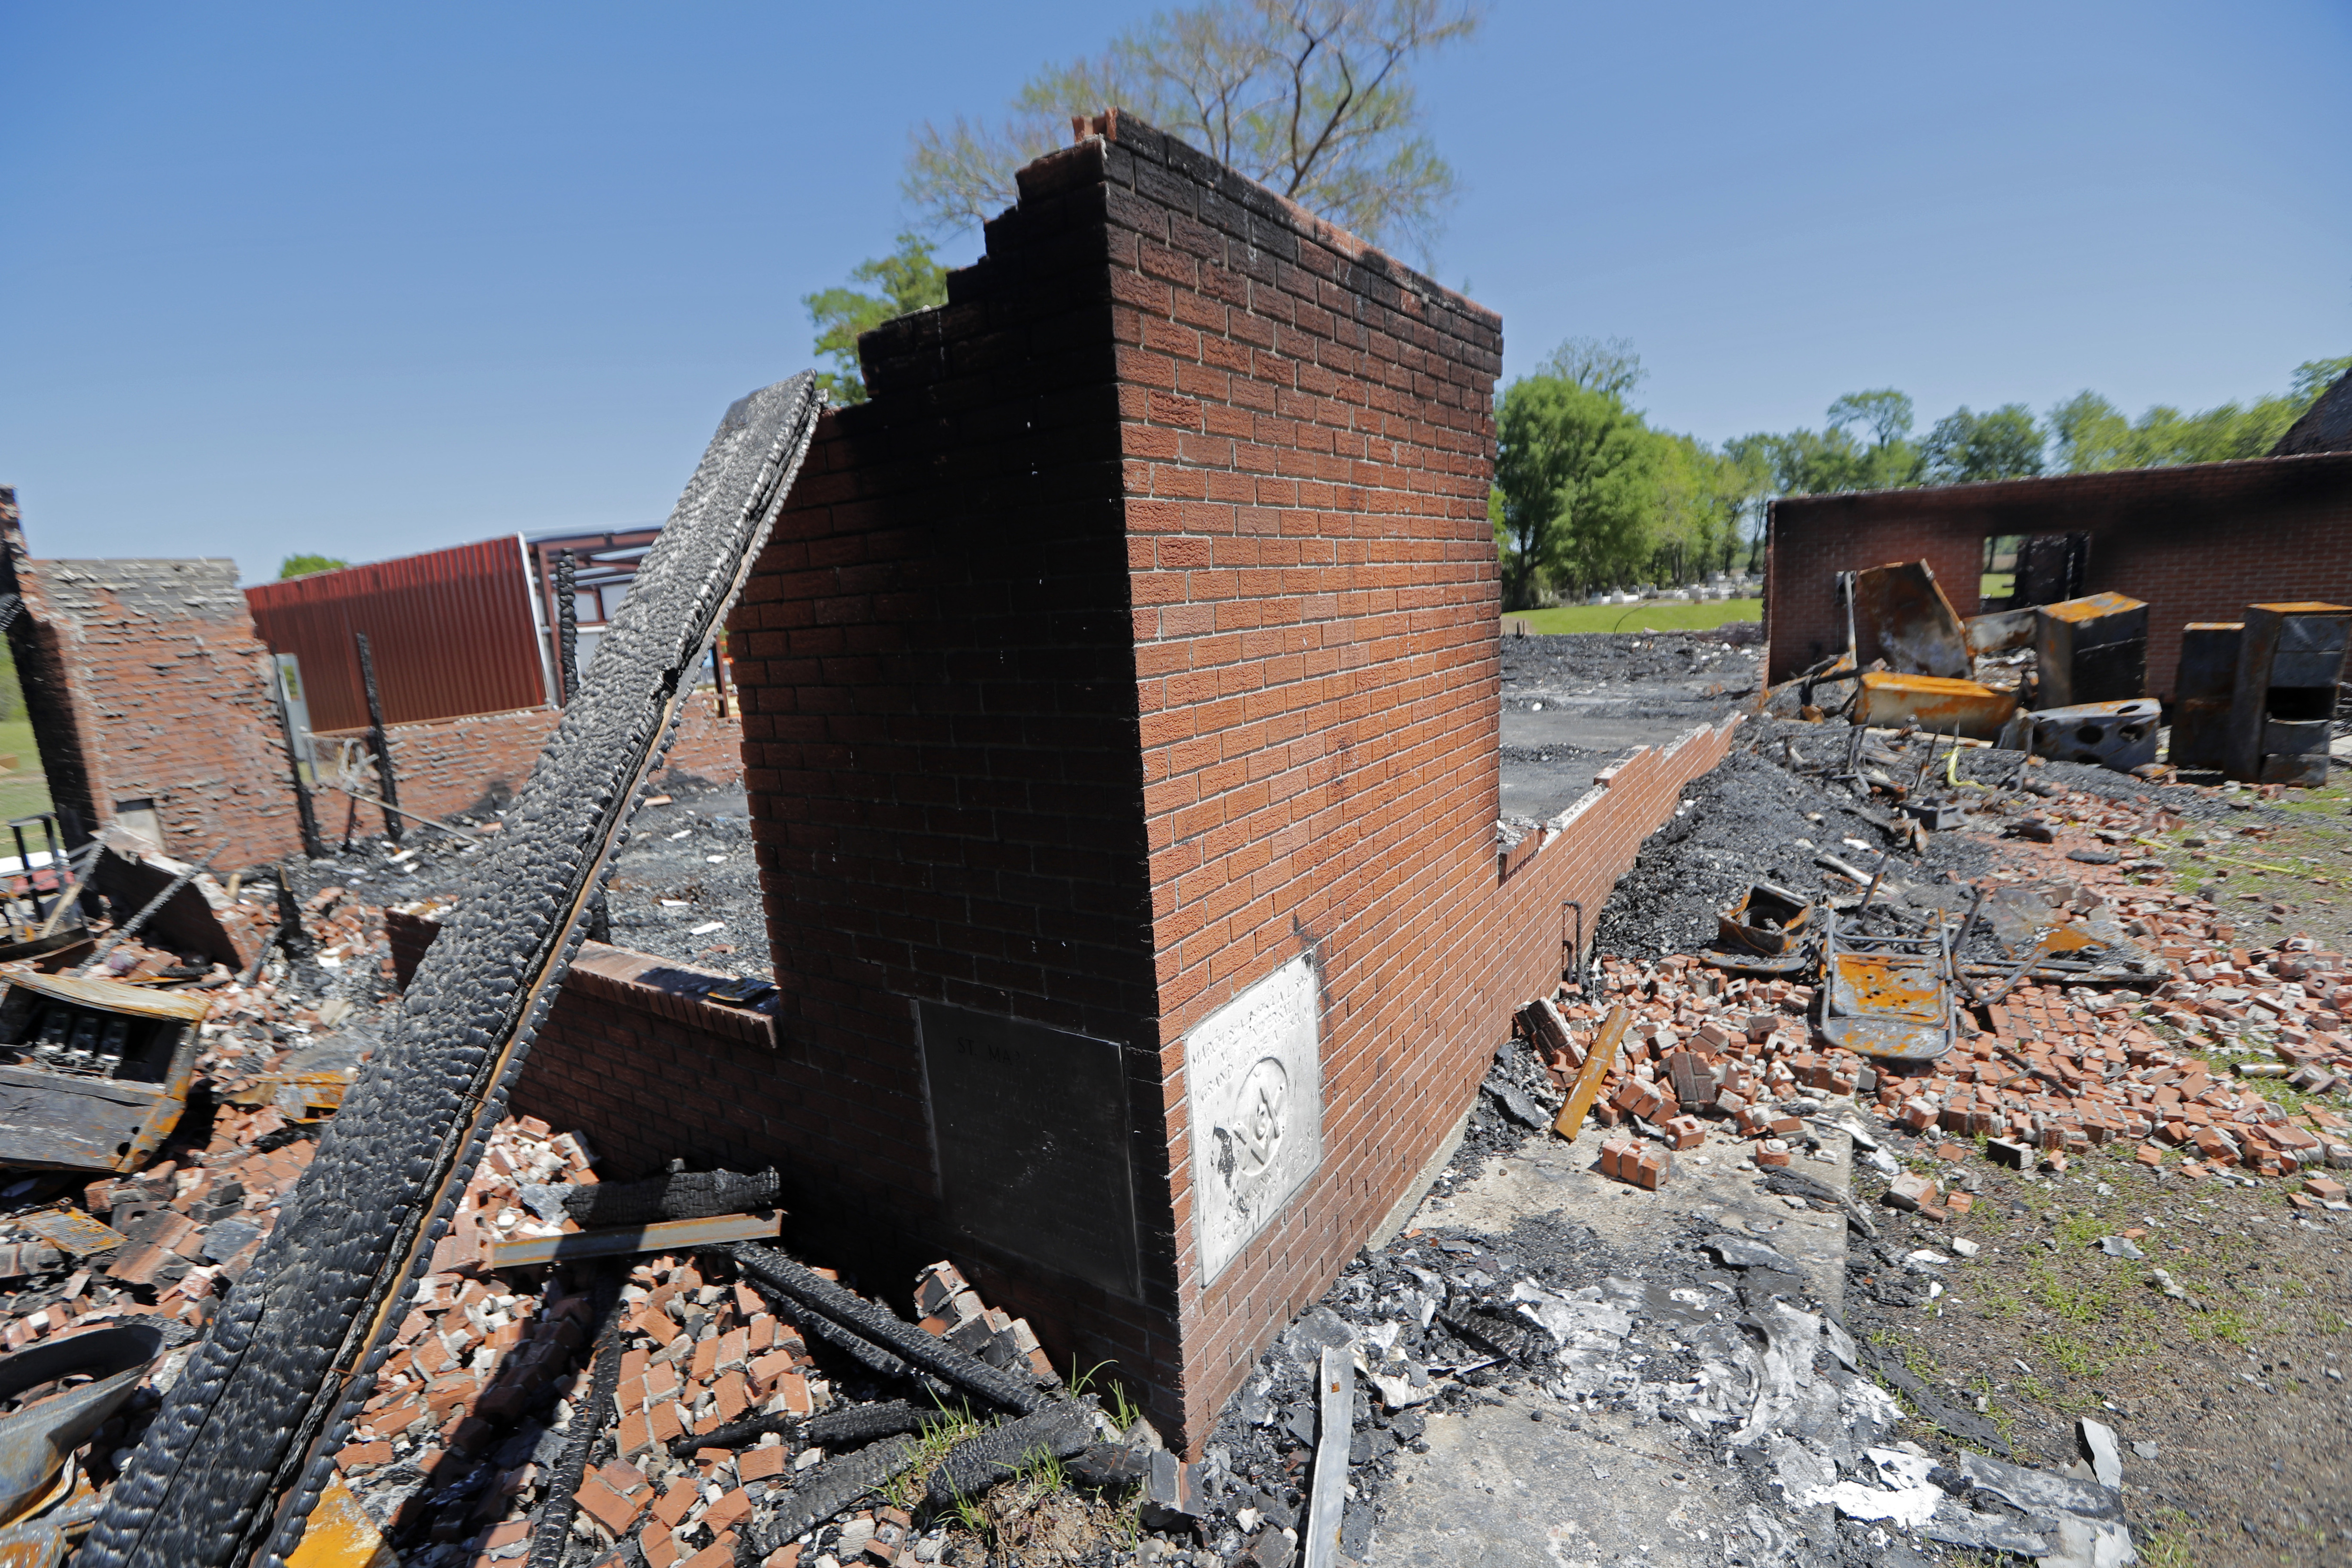 The burnt ruins of the St. Mary Baptist Church, one of three that recently burned down in St. Landry Parish, are seen in Port Barre, La., Apr. 10, 2019.